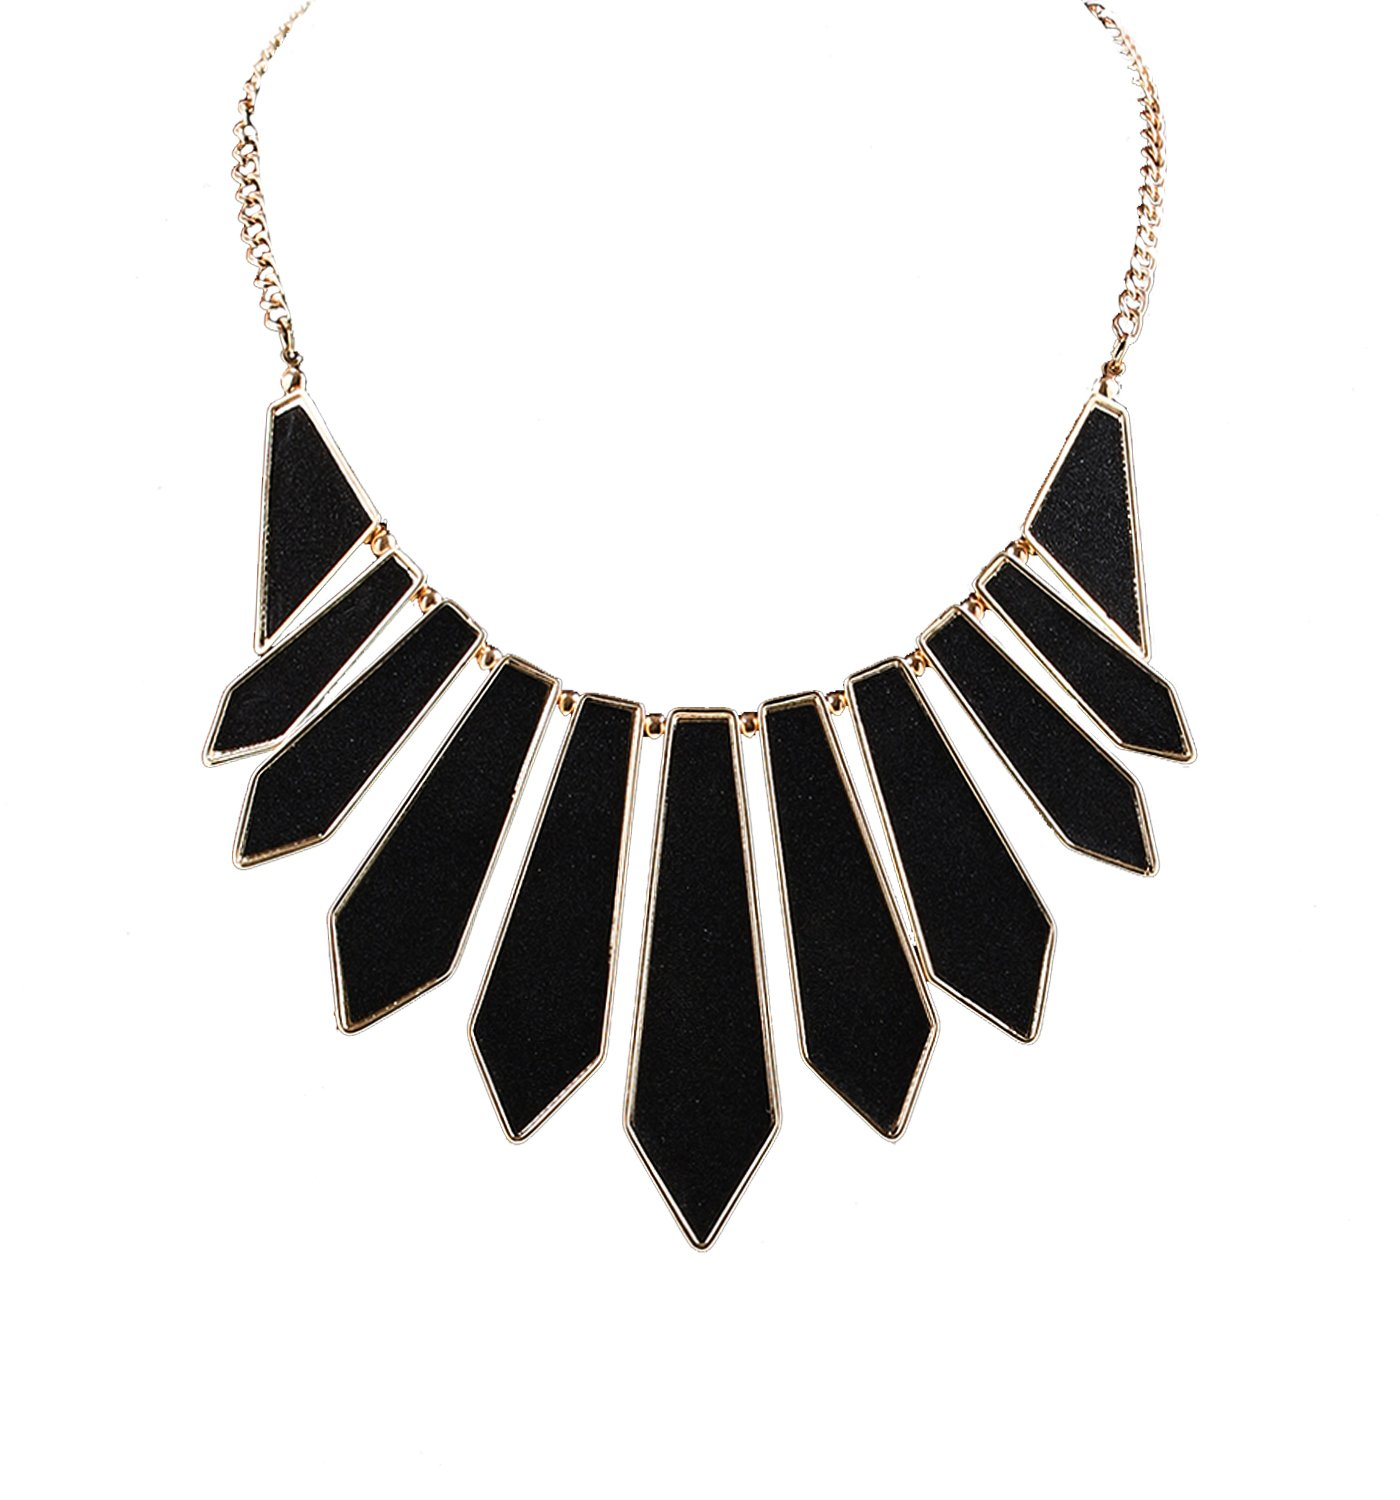 HSWE Statement Boho Bib Collar Pendant Necklace Women Black Choker Necklace Girls Women